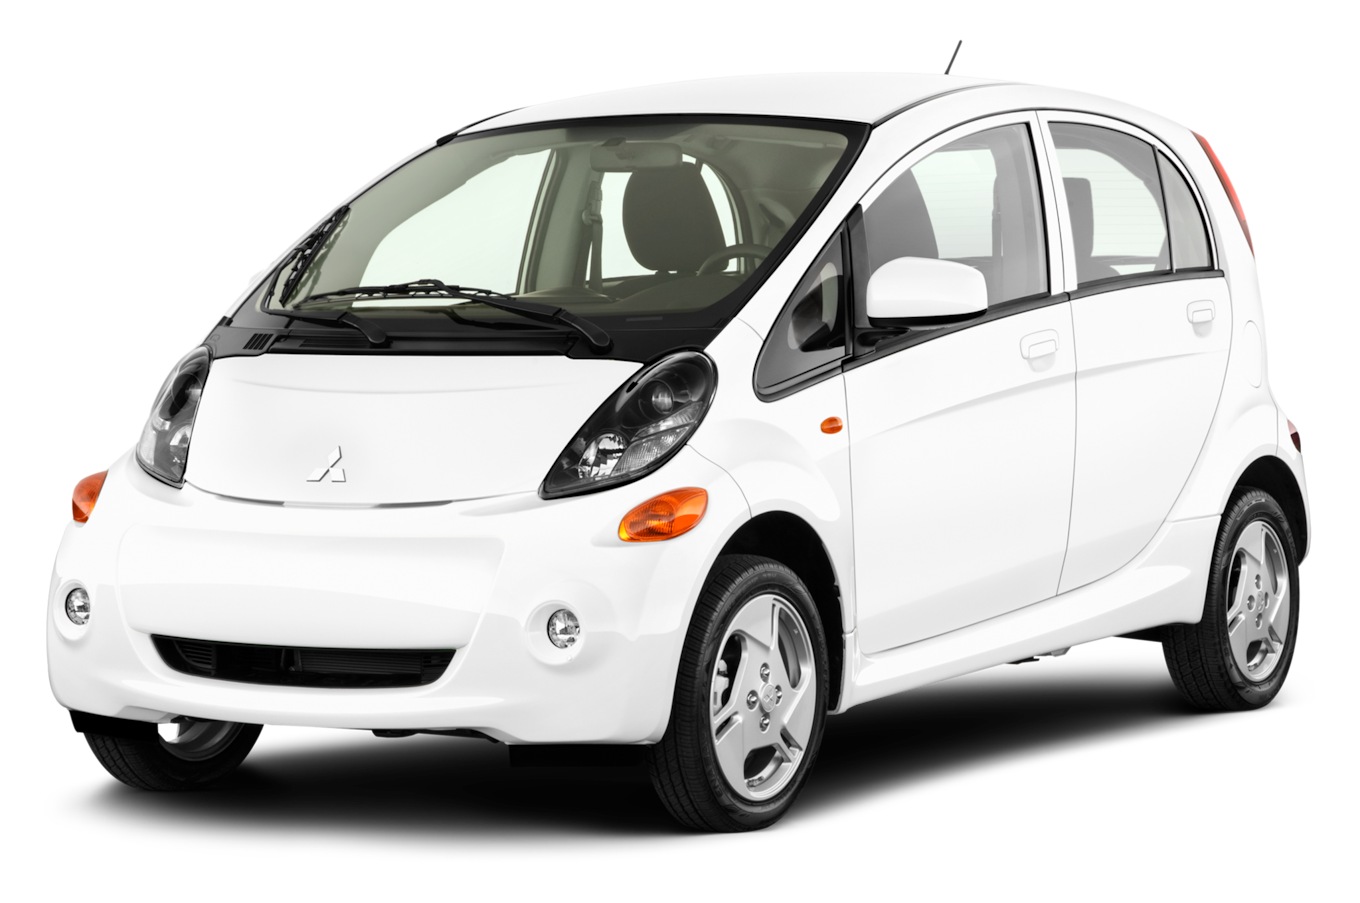 14 All New 2019 Mitsubishi I MIEV Exterior And Interior